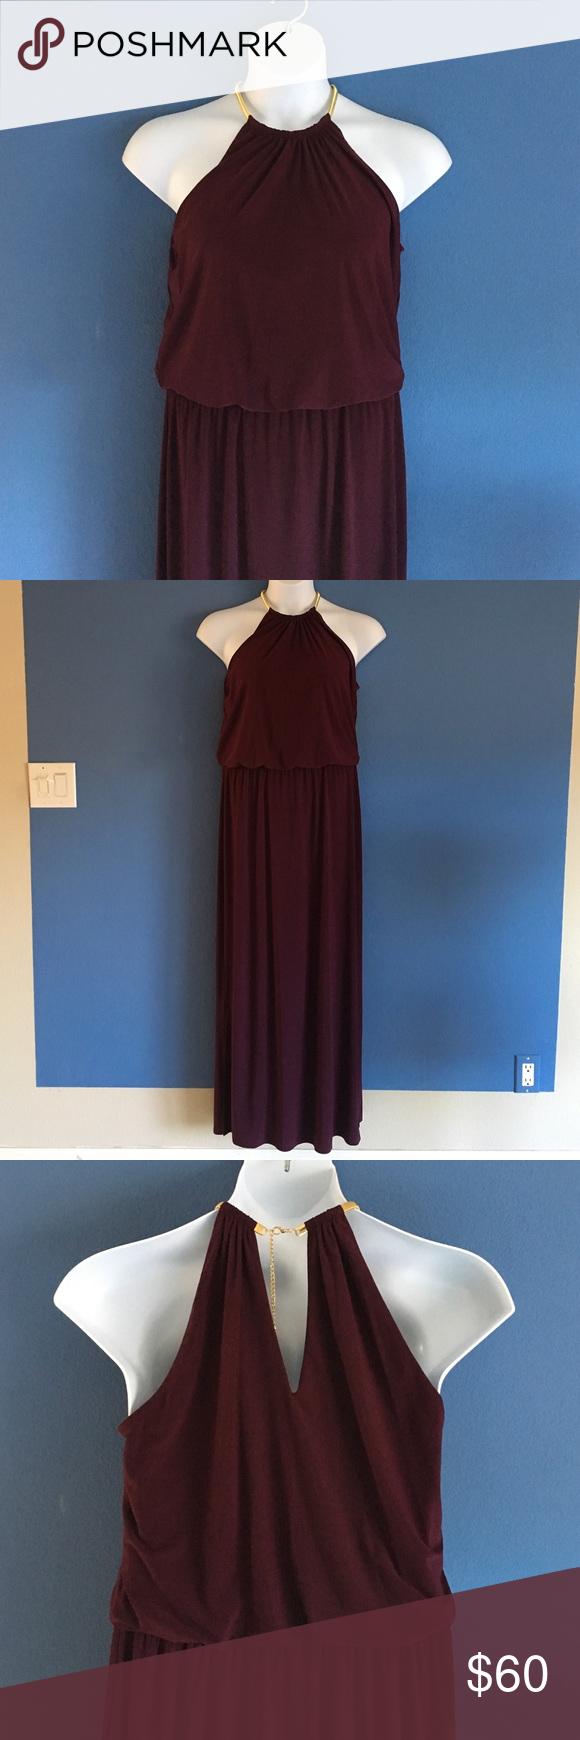 """🆕 MSK Purple Halter Dress You just found the perfect dress for your holiday party!  This dress has a flattering silhouette.  The halter top features a gold metal neck accent.   The elastic waist stretches for the perfect fit. The bottom has 15"""" slit on both sides from the bottom.  Simply gorgeous!  You will make a statement in this dress.  Material:  96% Polyester/4% Spandex. Measurements:  Length - 58""""/Bust - 20""""/Waist - 16"""" (has stretch) MSK Dresses Maxi"""